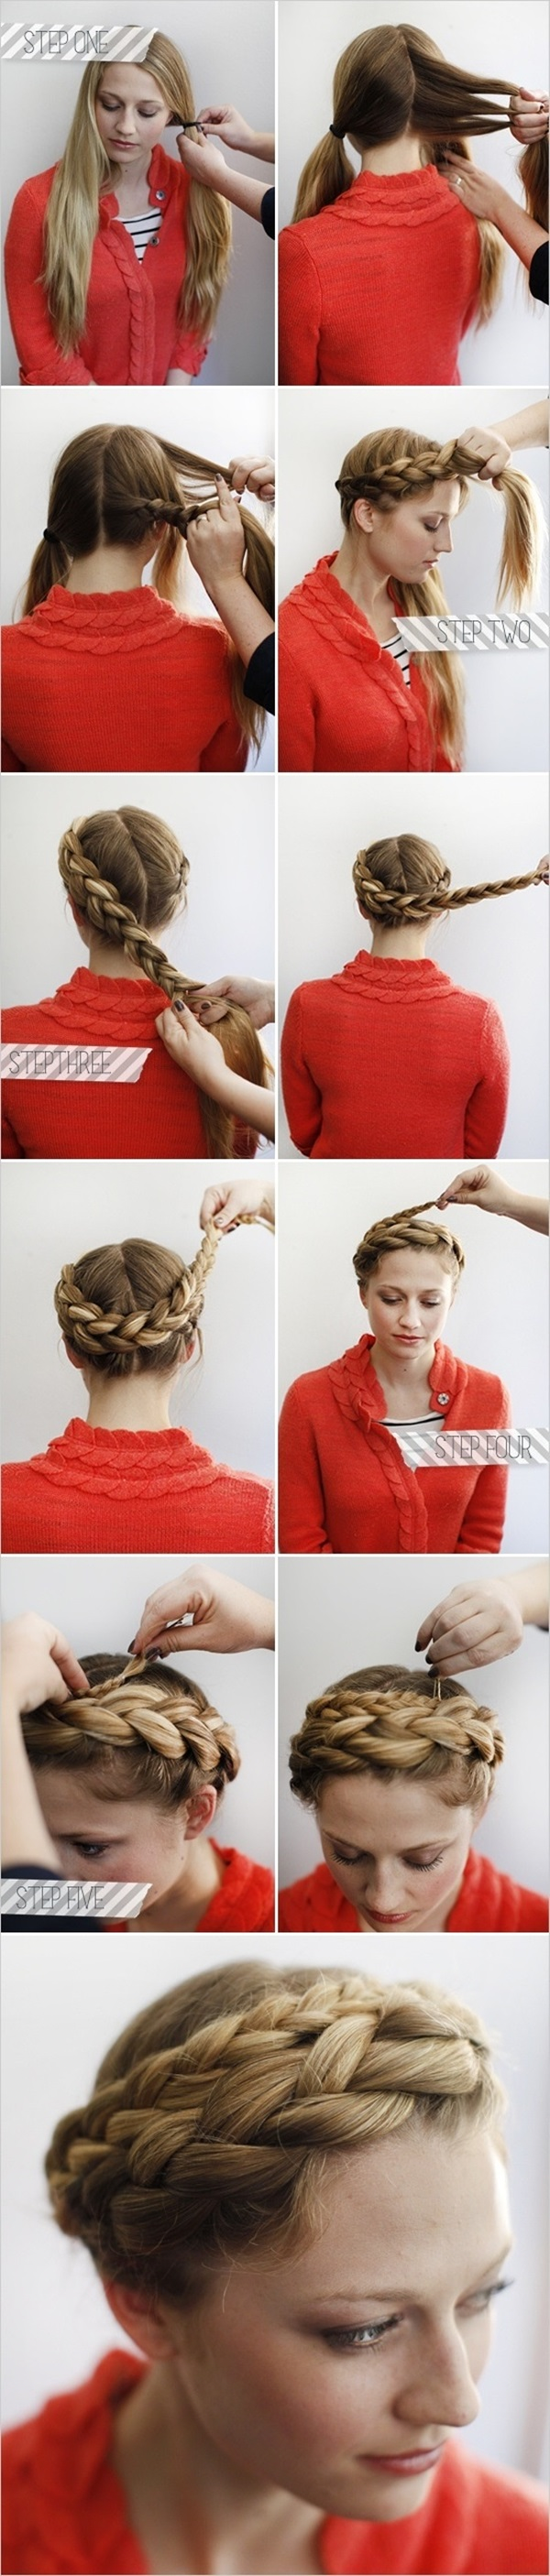 Simple Five Minute Hairstyles (57)